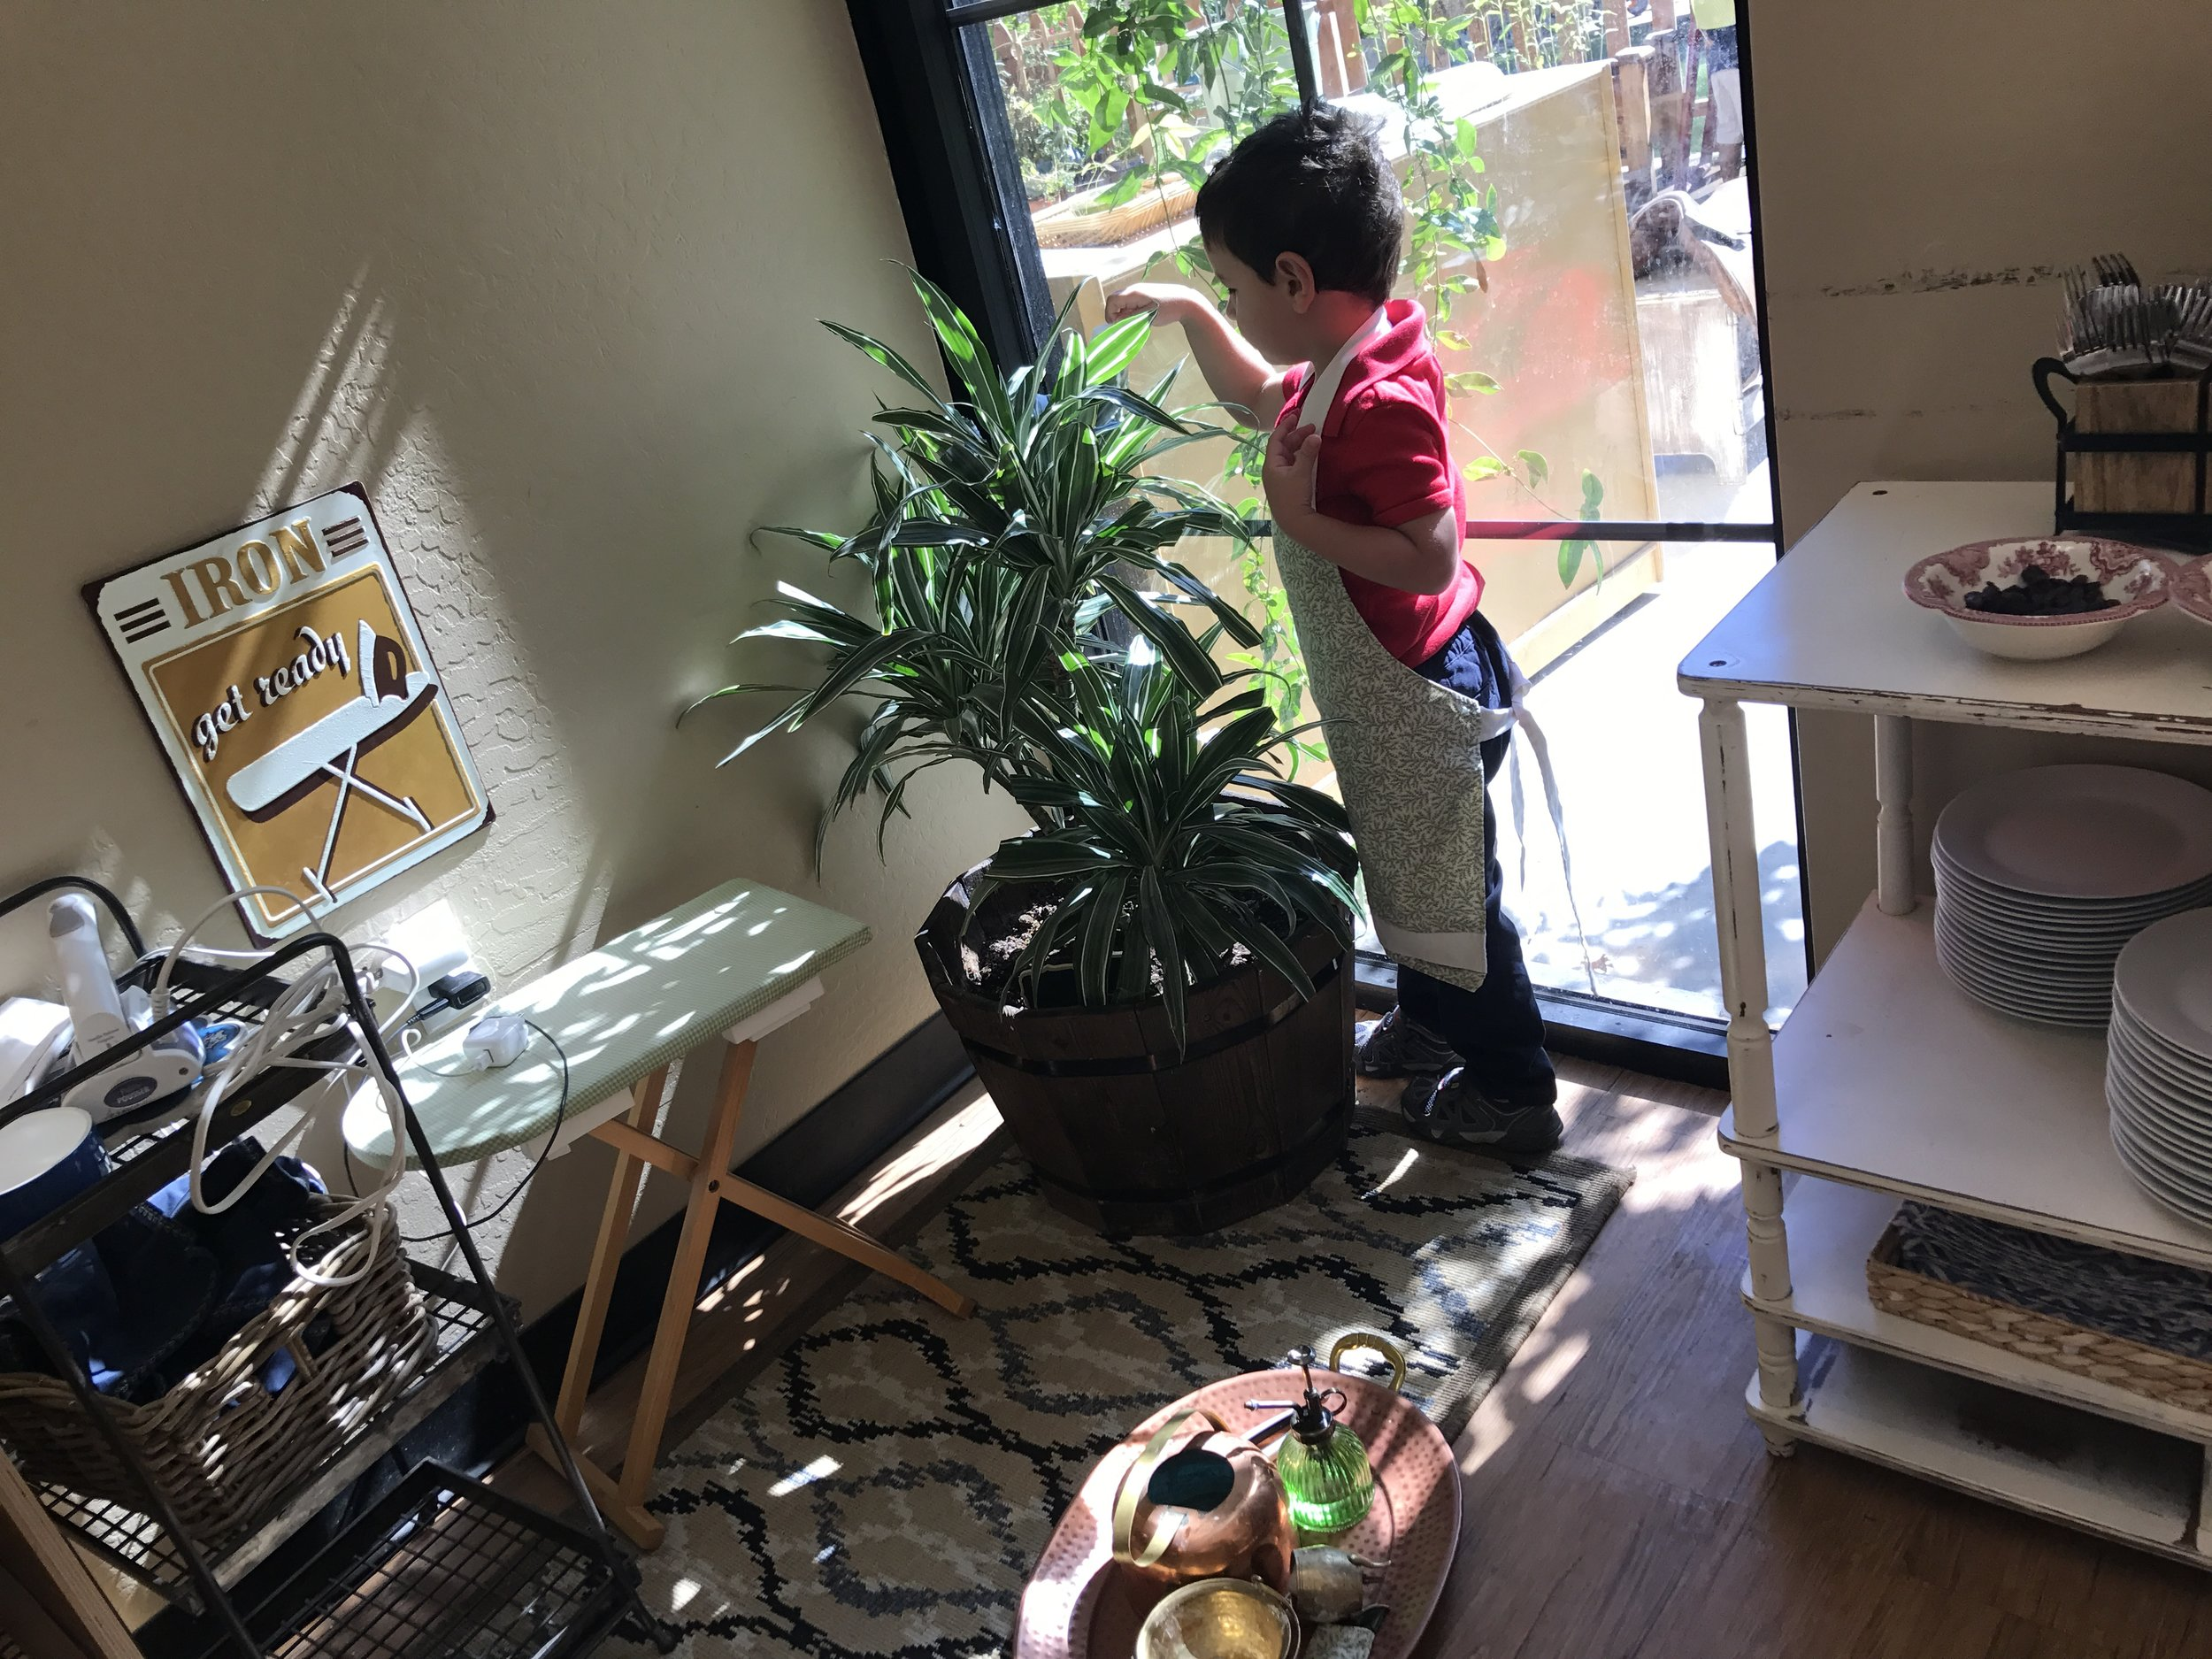 Taking care of a plant